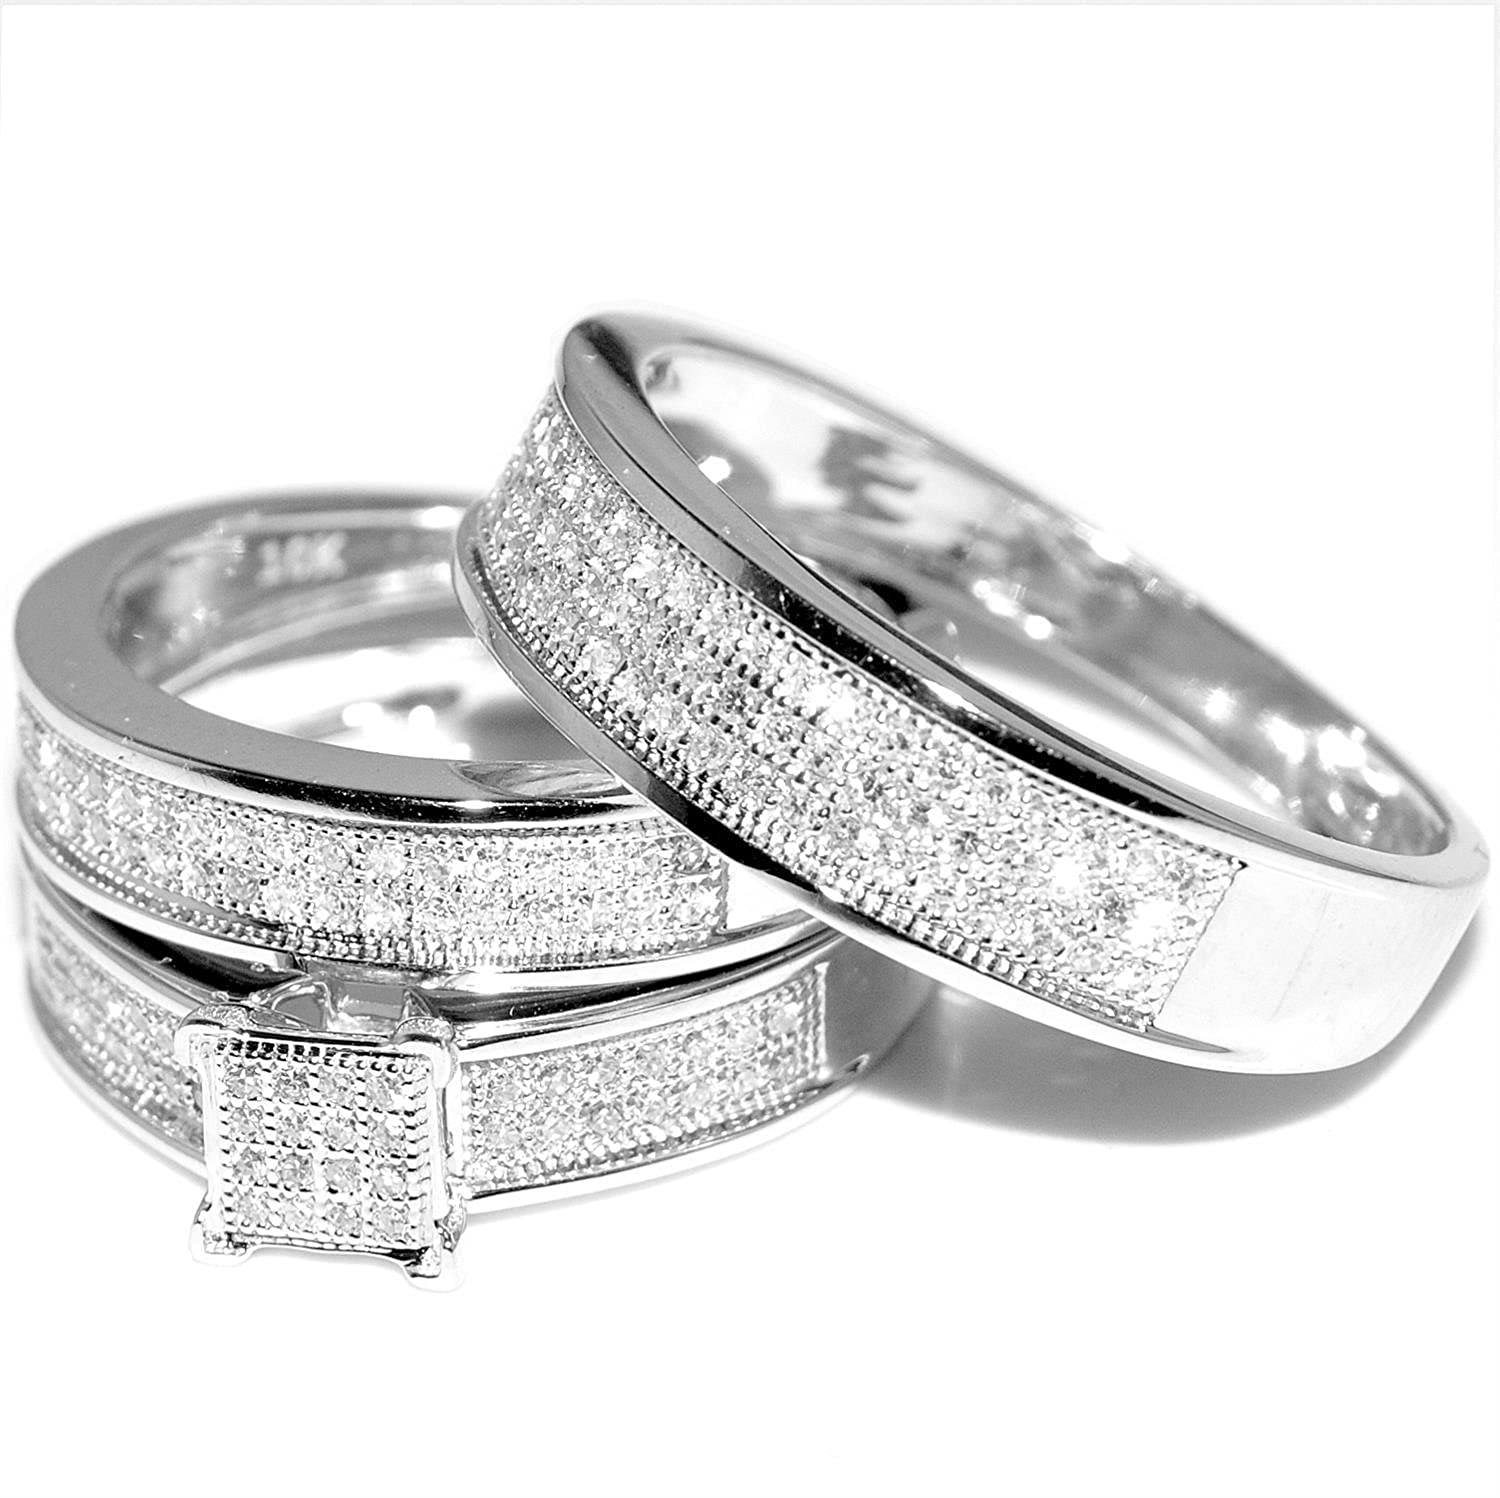 white gold trio wedding set mens womens wedding rings matching 040cttw diamondamazoncom - Wedding Ring Sets For Women